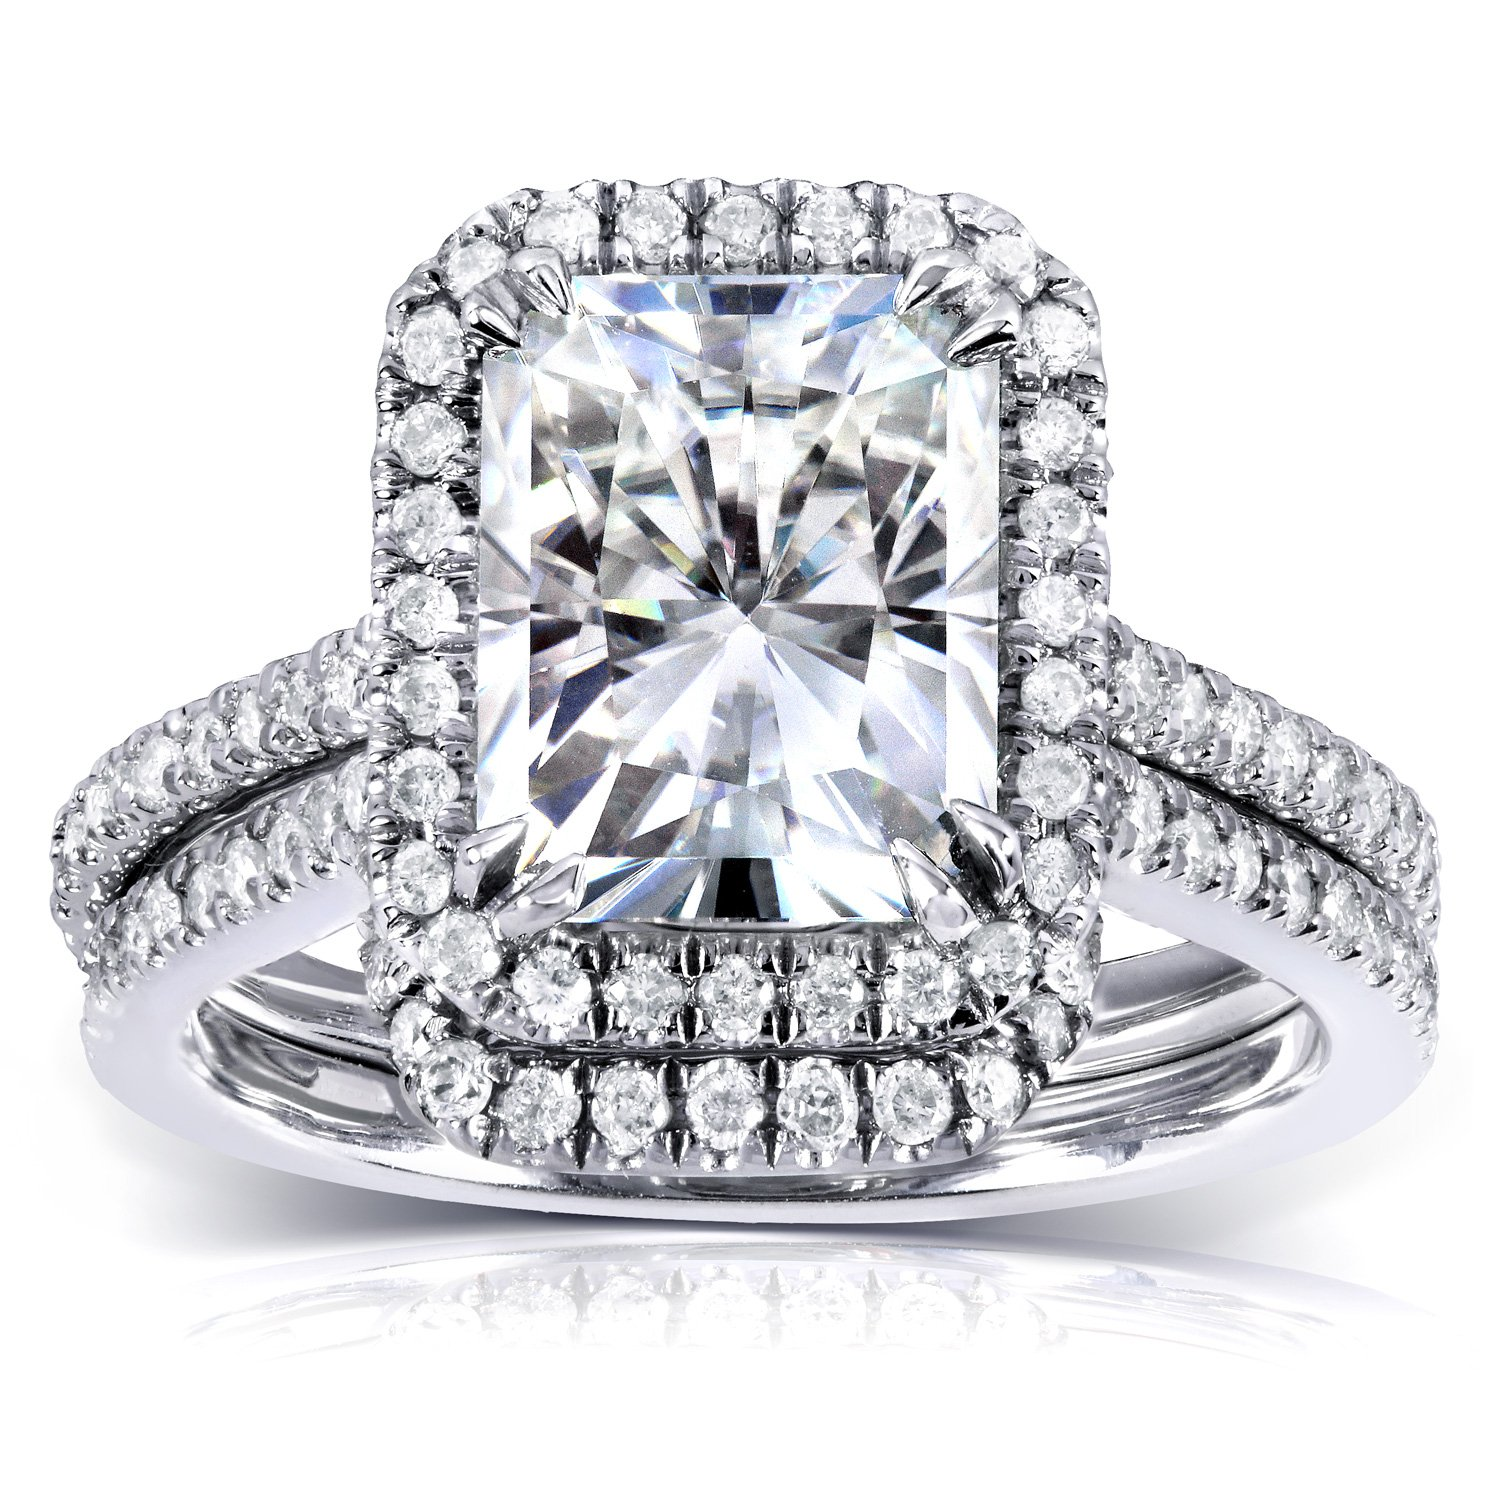 Near-Colorless (F-G) Moissanite Bridal Set with Diamond 3 1/6 CTW 14k White Gold, Size 5.5